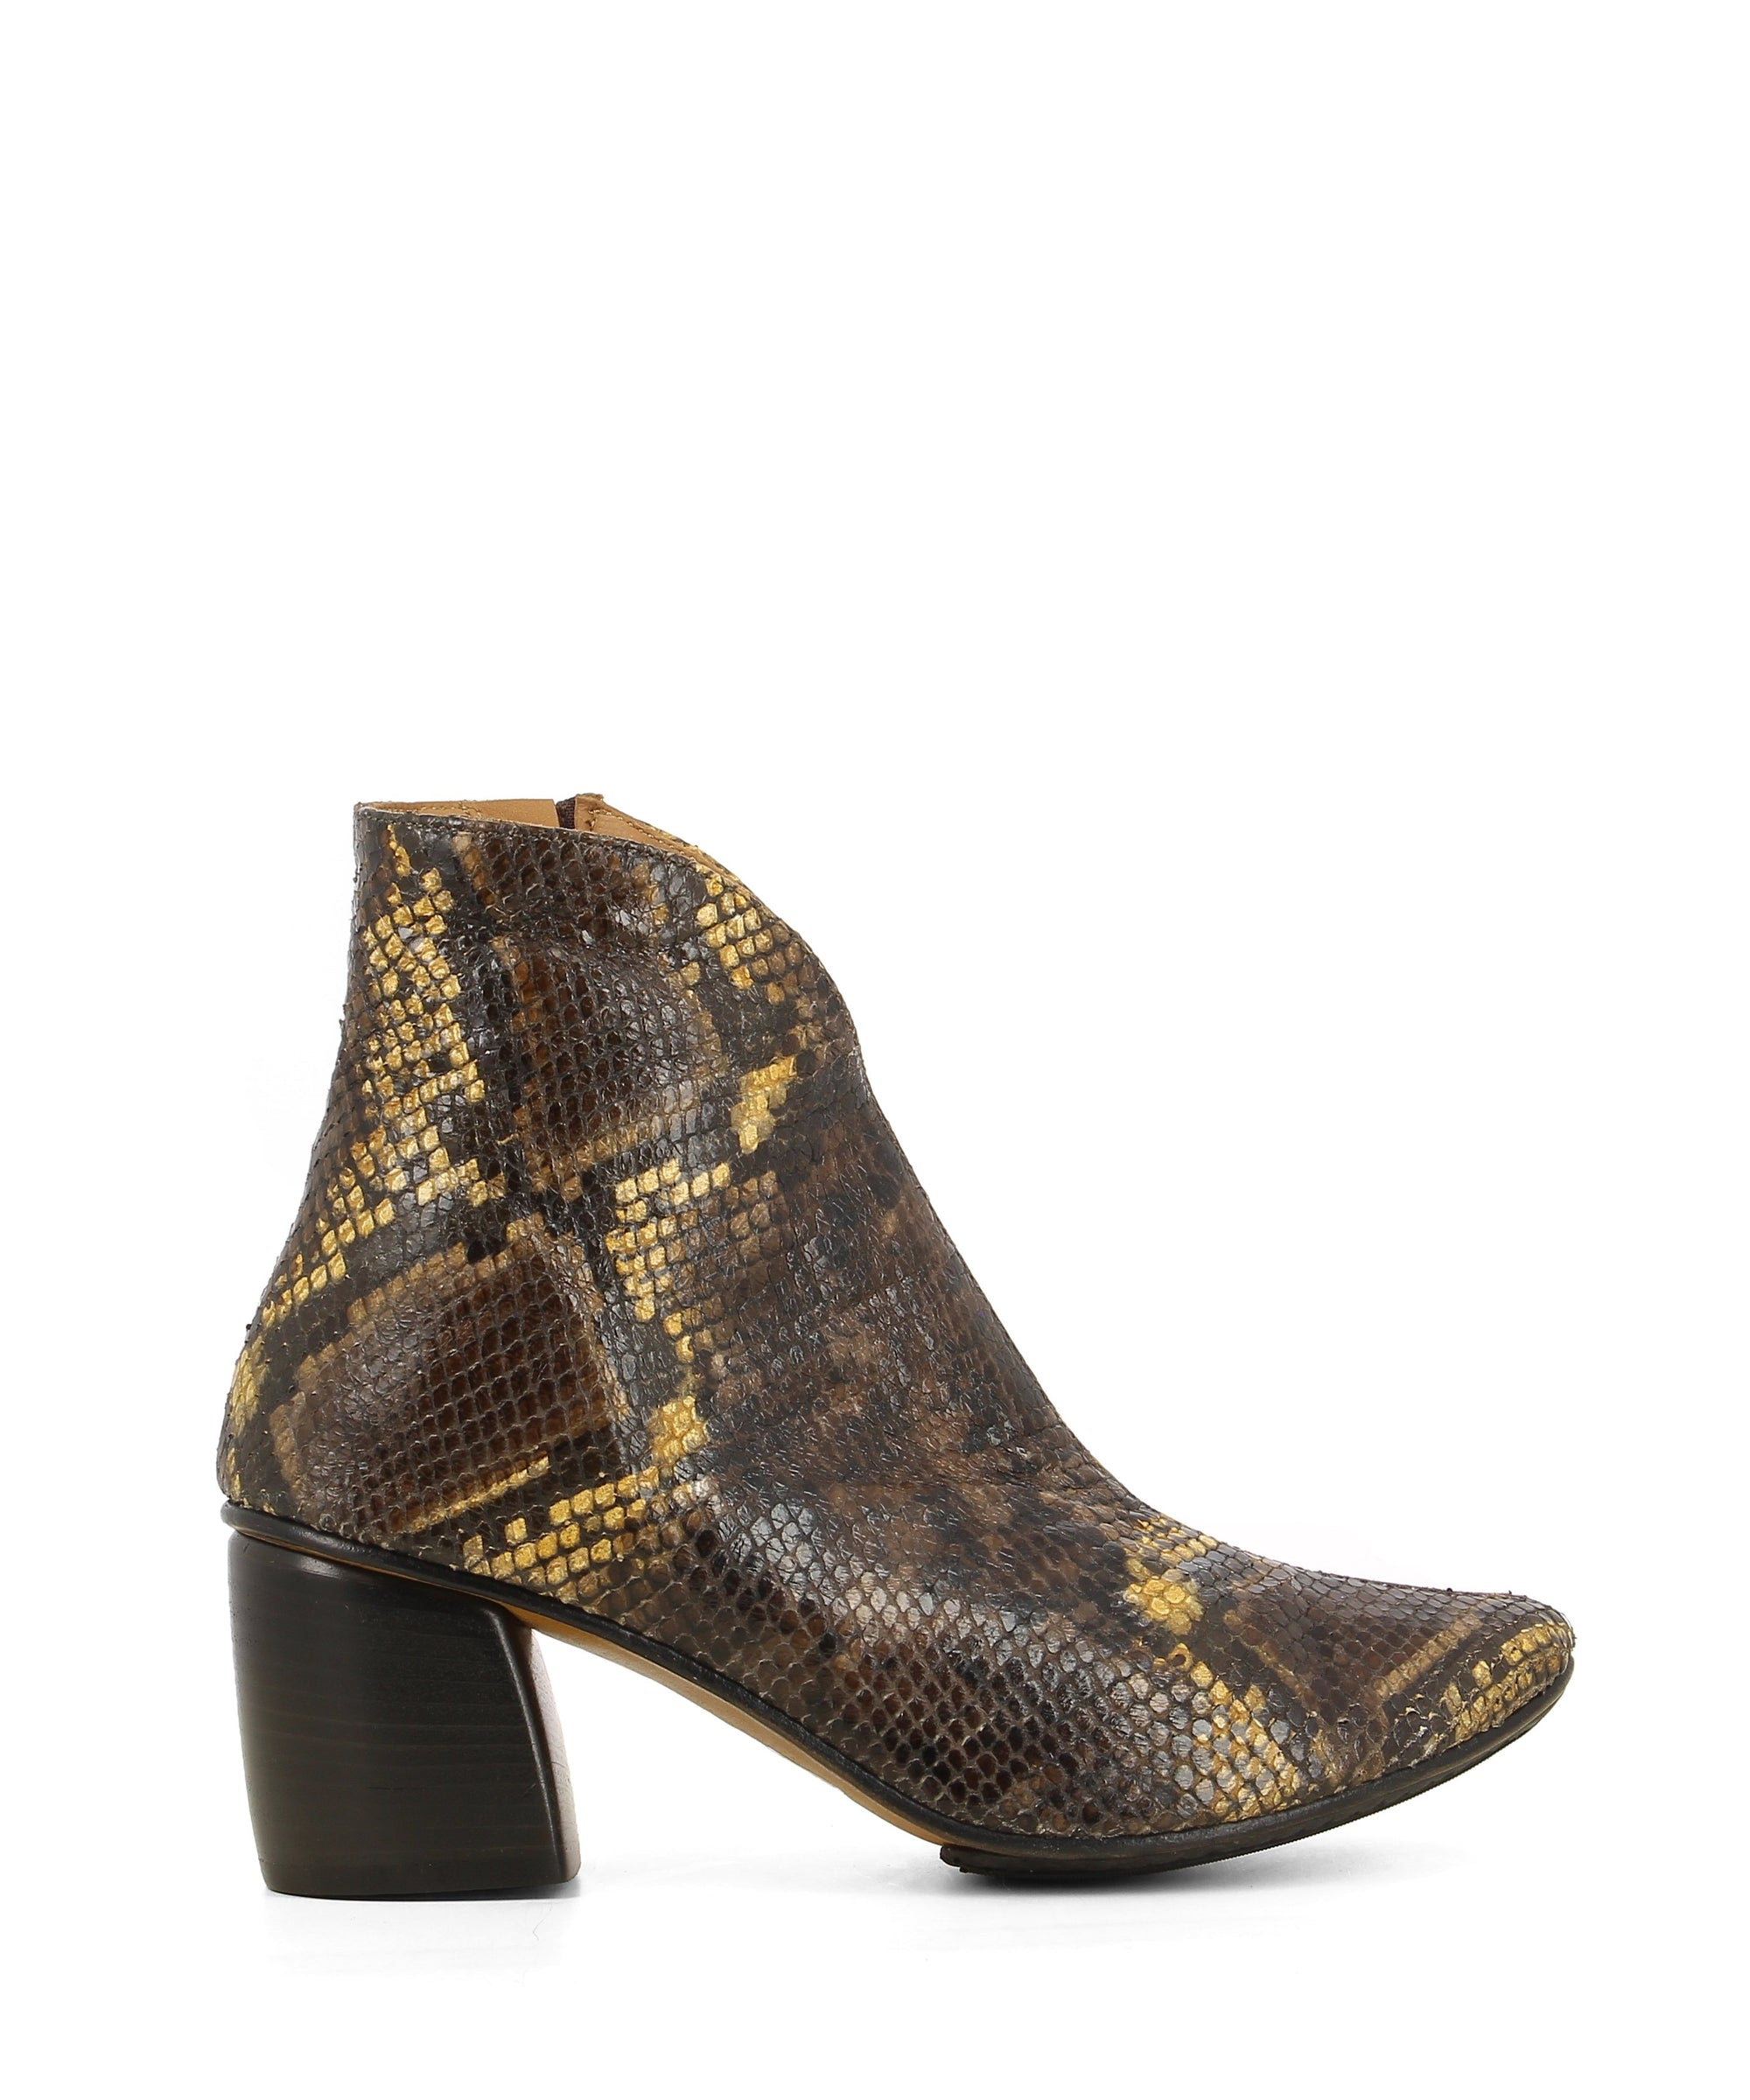 A brown snake skin Italian leather ankle boot that has a side zipper fastening and features a block heel and a curved almond toe by 2 Baia Vista.